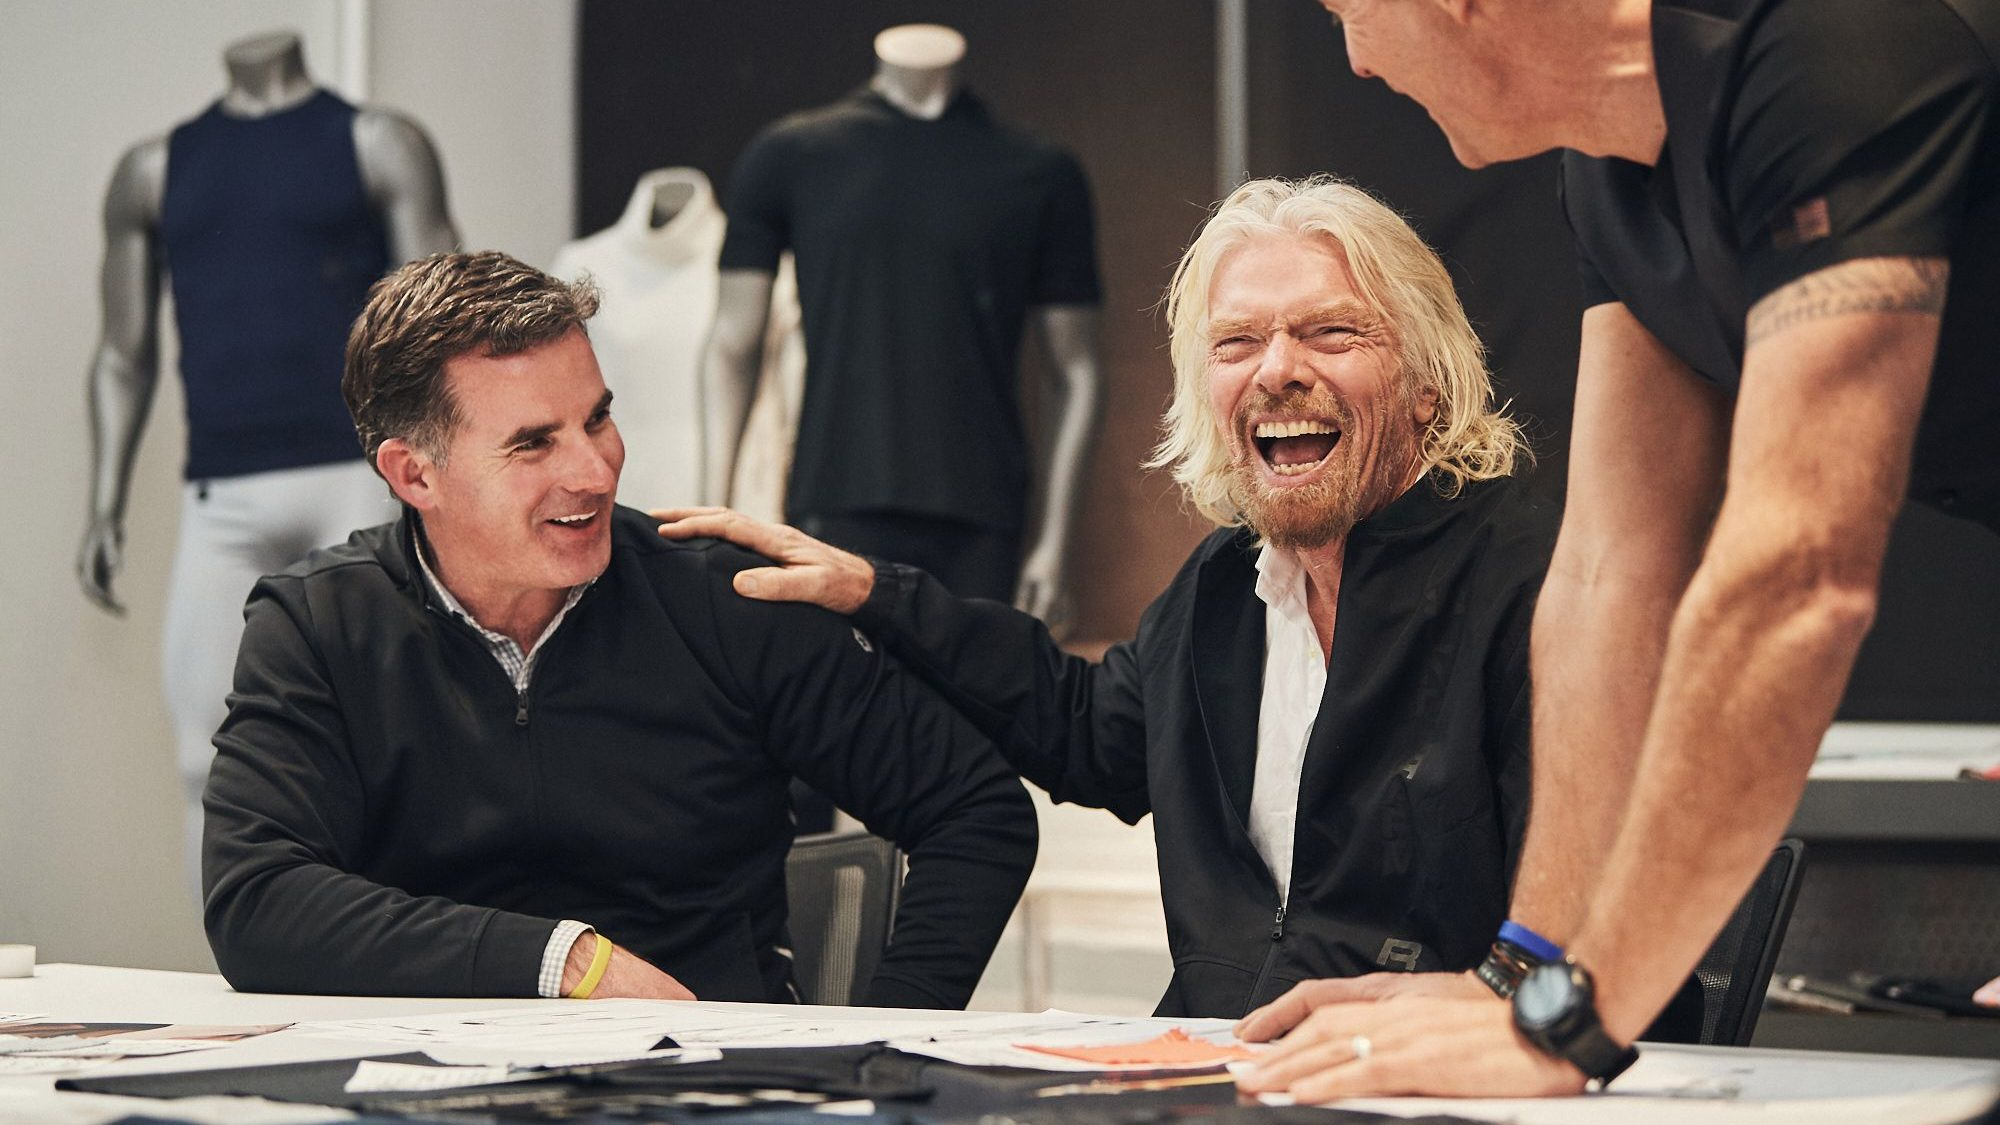 Kevin Plank and Richard Branson.